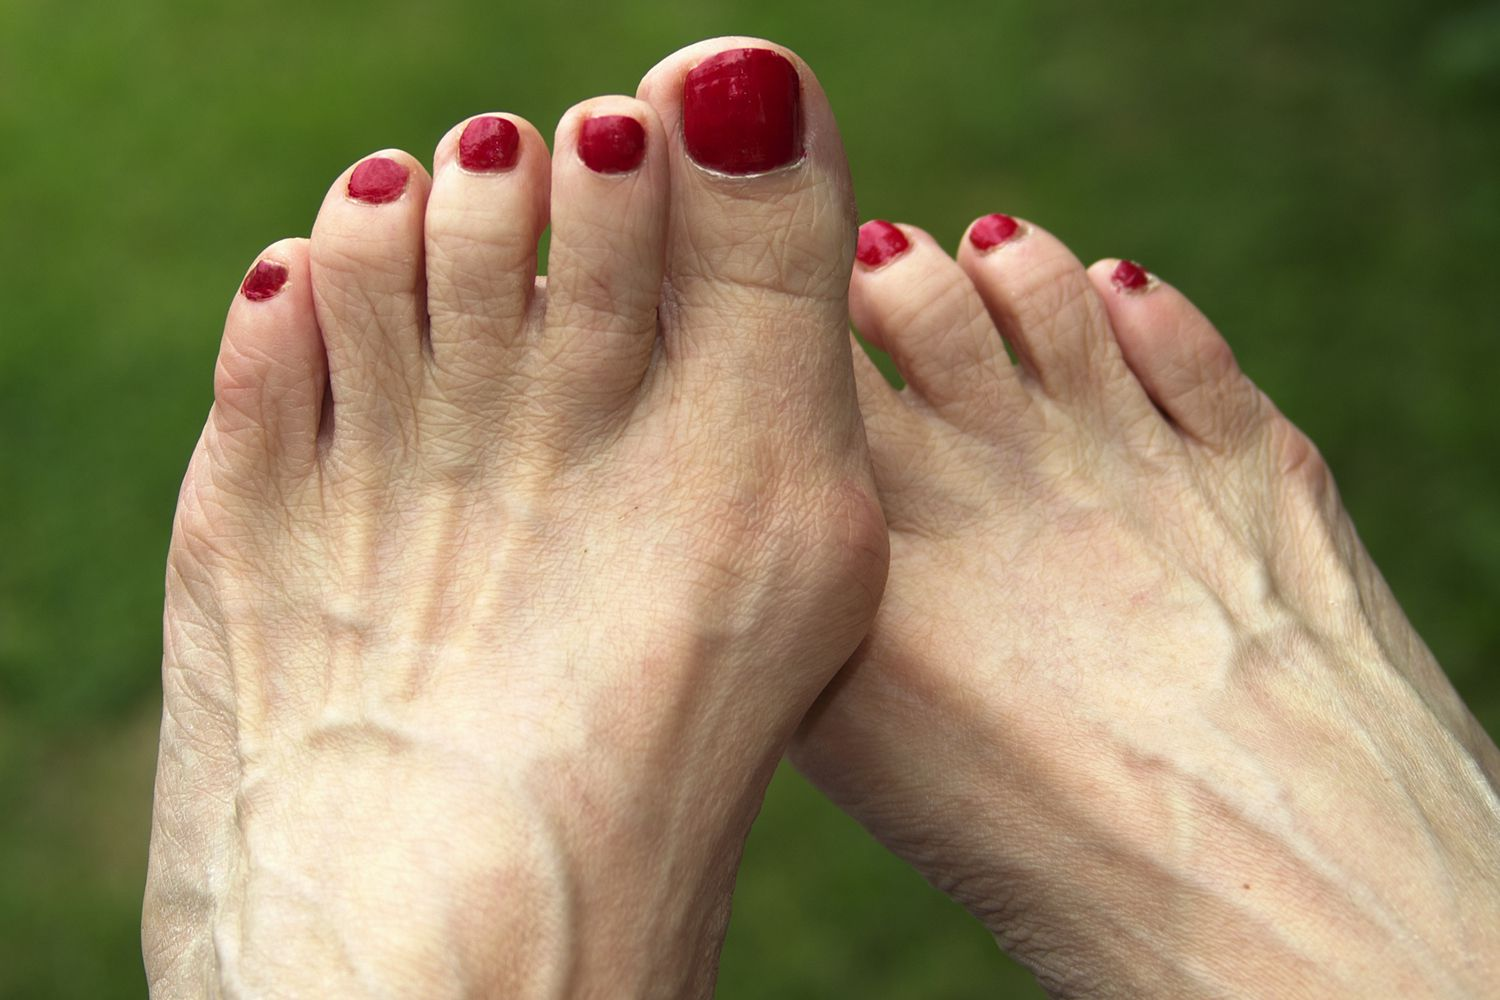 A large bunion on a woman's foot